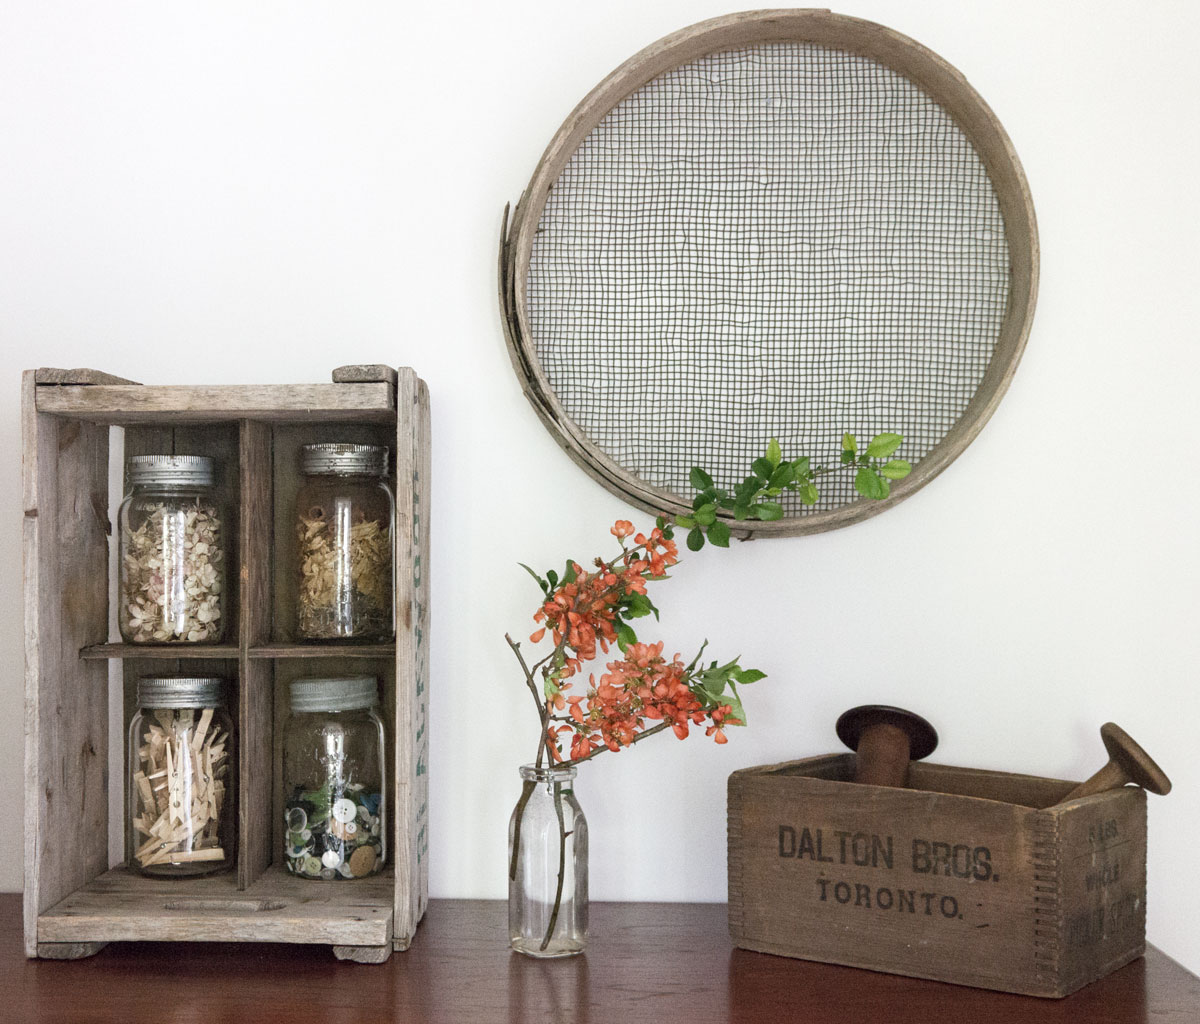 ideas for using Spring branches and blossoms to decorate